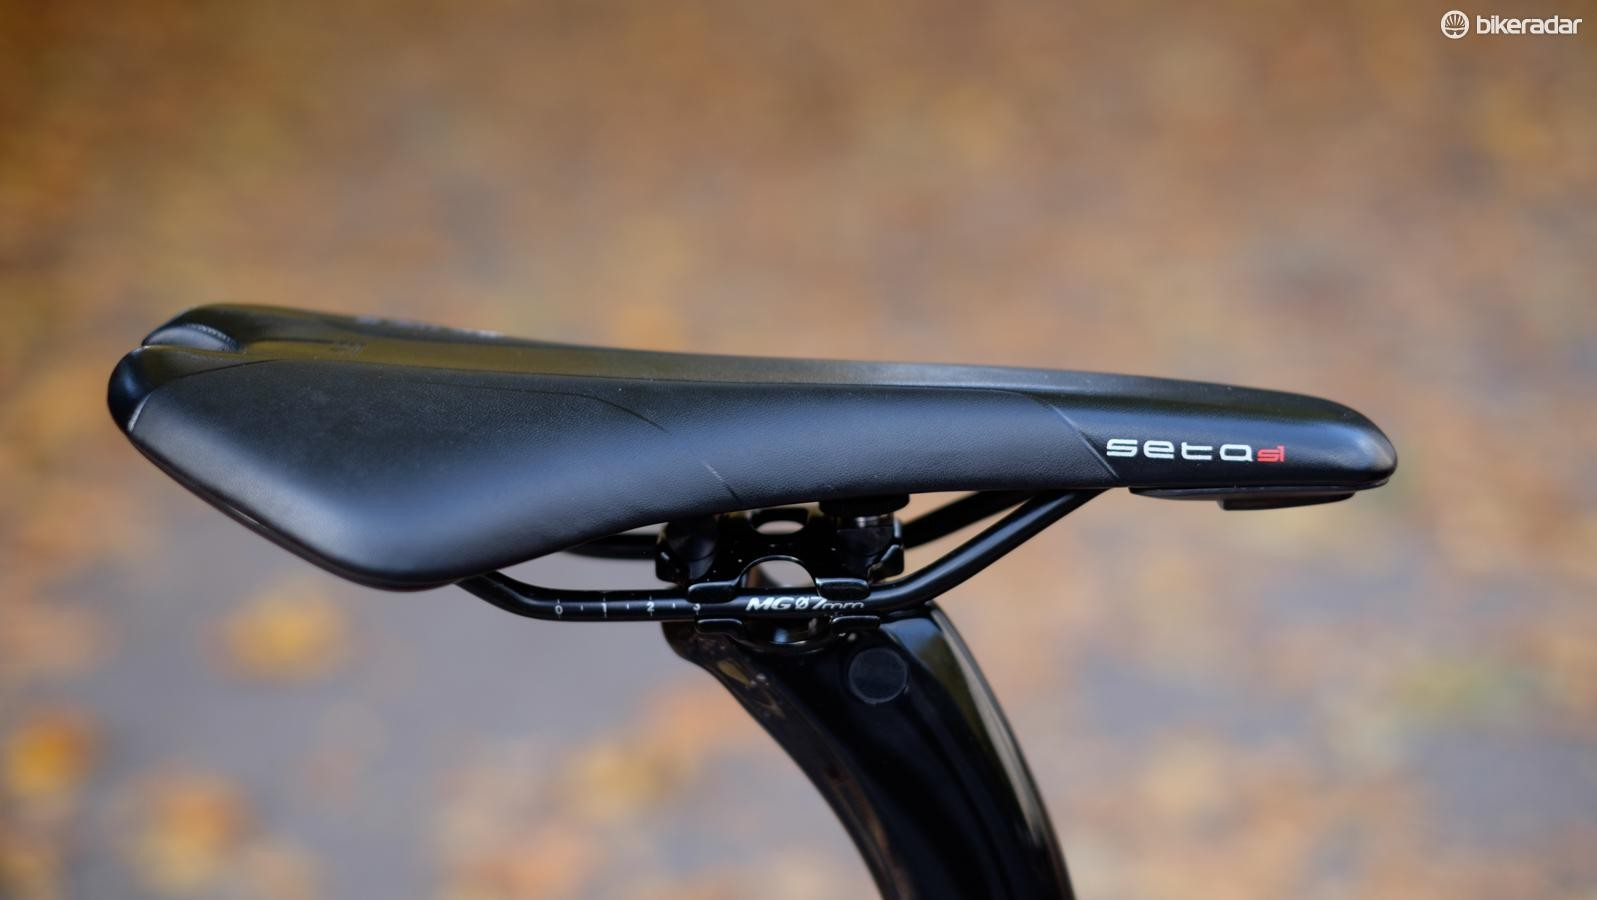 Selle Royal's Seta saddle is Arione long and well shaped and padded